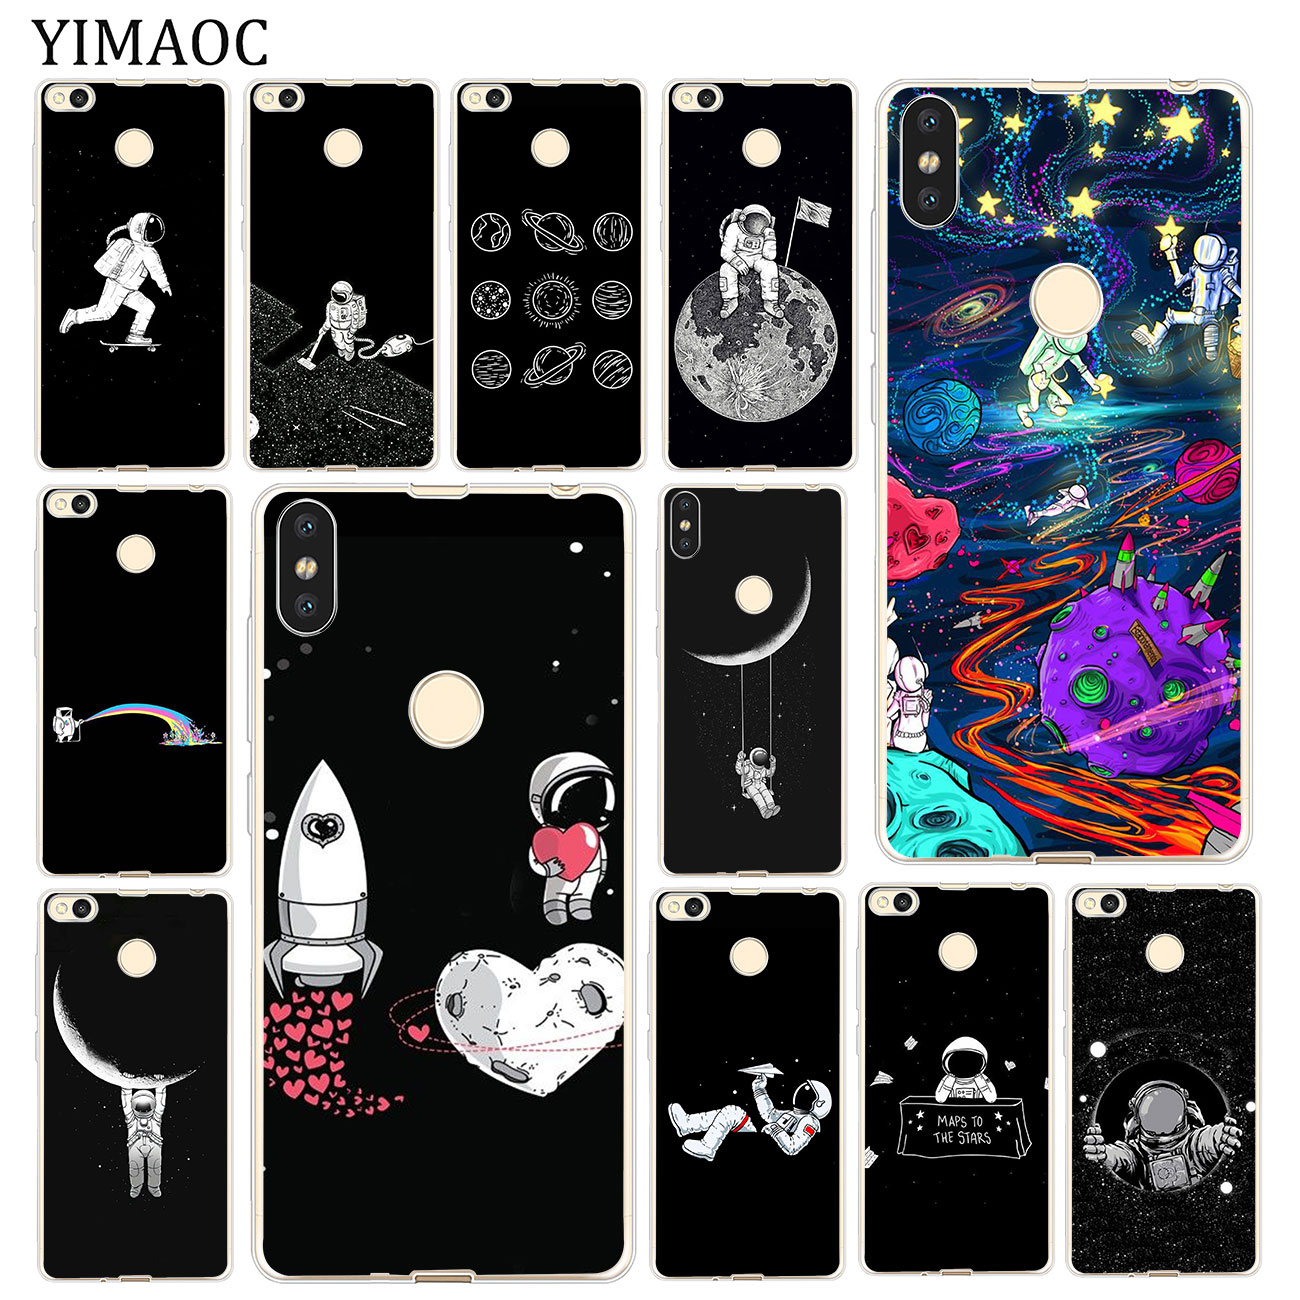 Half-wrapped Case Phone Bags & Cases Babaite Black With White Moon Stars Space Astronaut Phone Case For Xiaomi Mi 8se 6 Mi8lite Note2 Note3 Mix2 Max2 Max3 Funda Big Clearance Sale